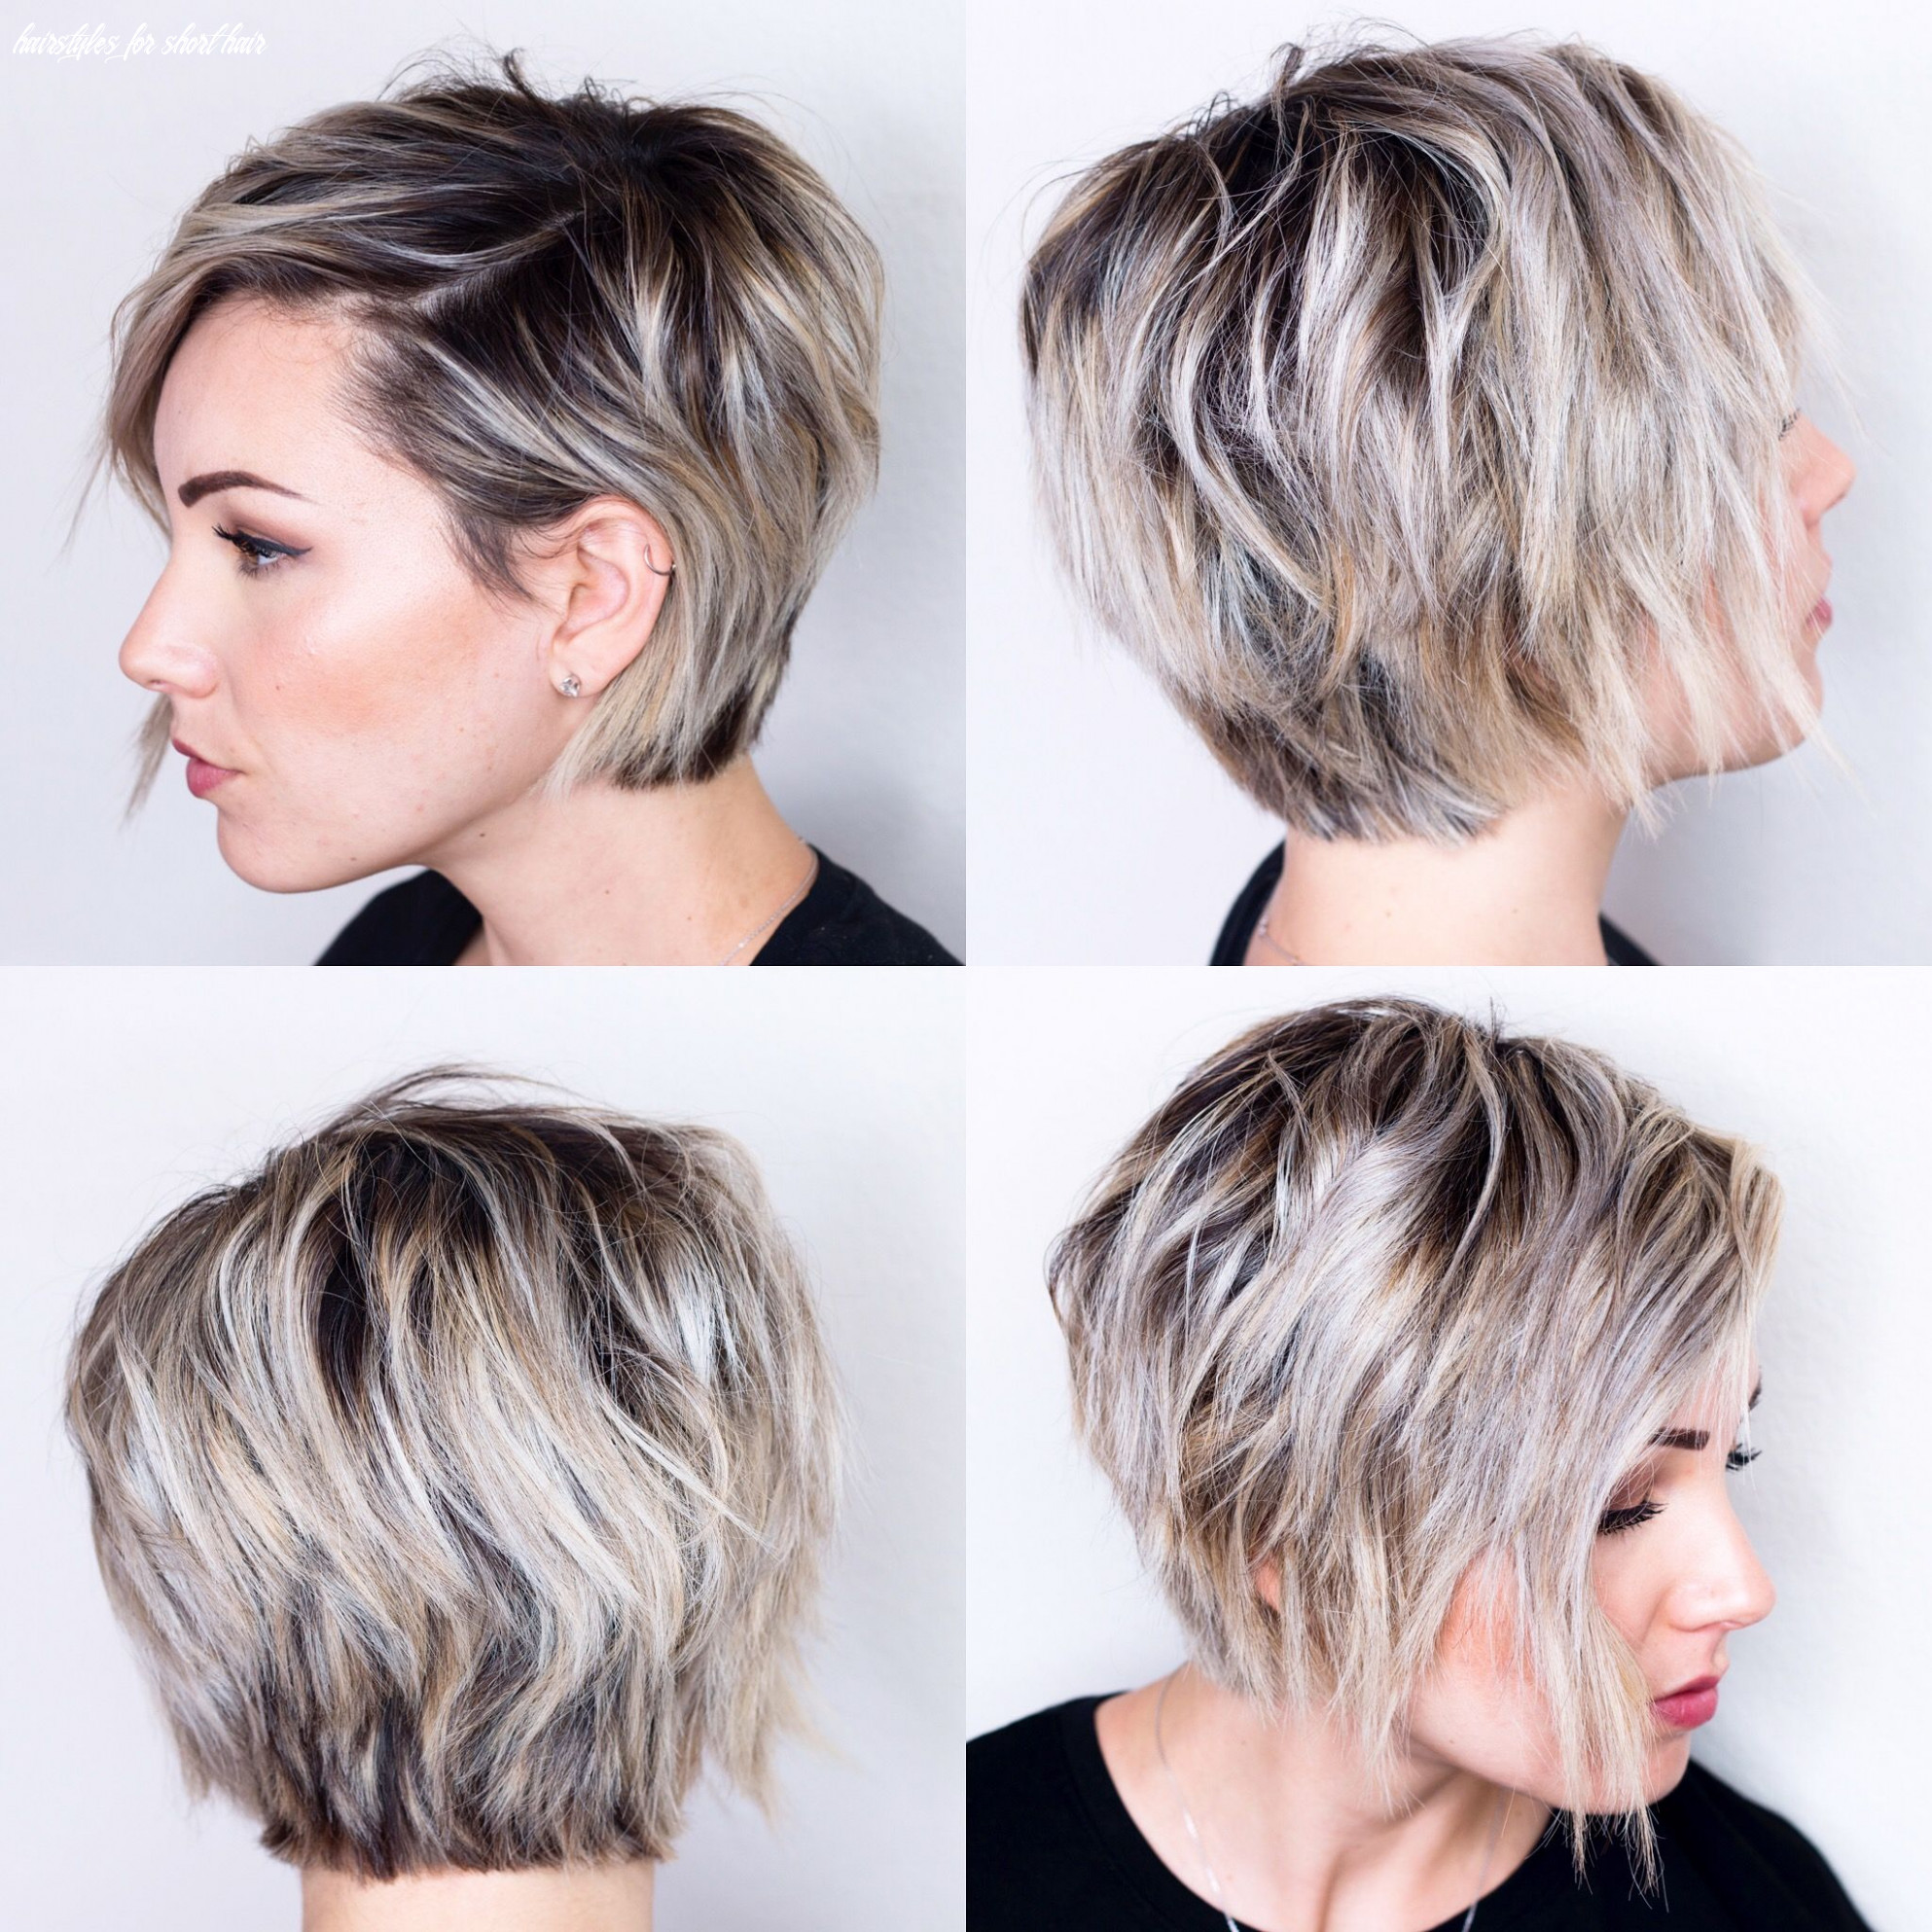 12 view of short hair | oval face hairstyles, growing out short